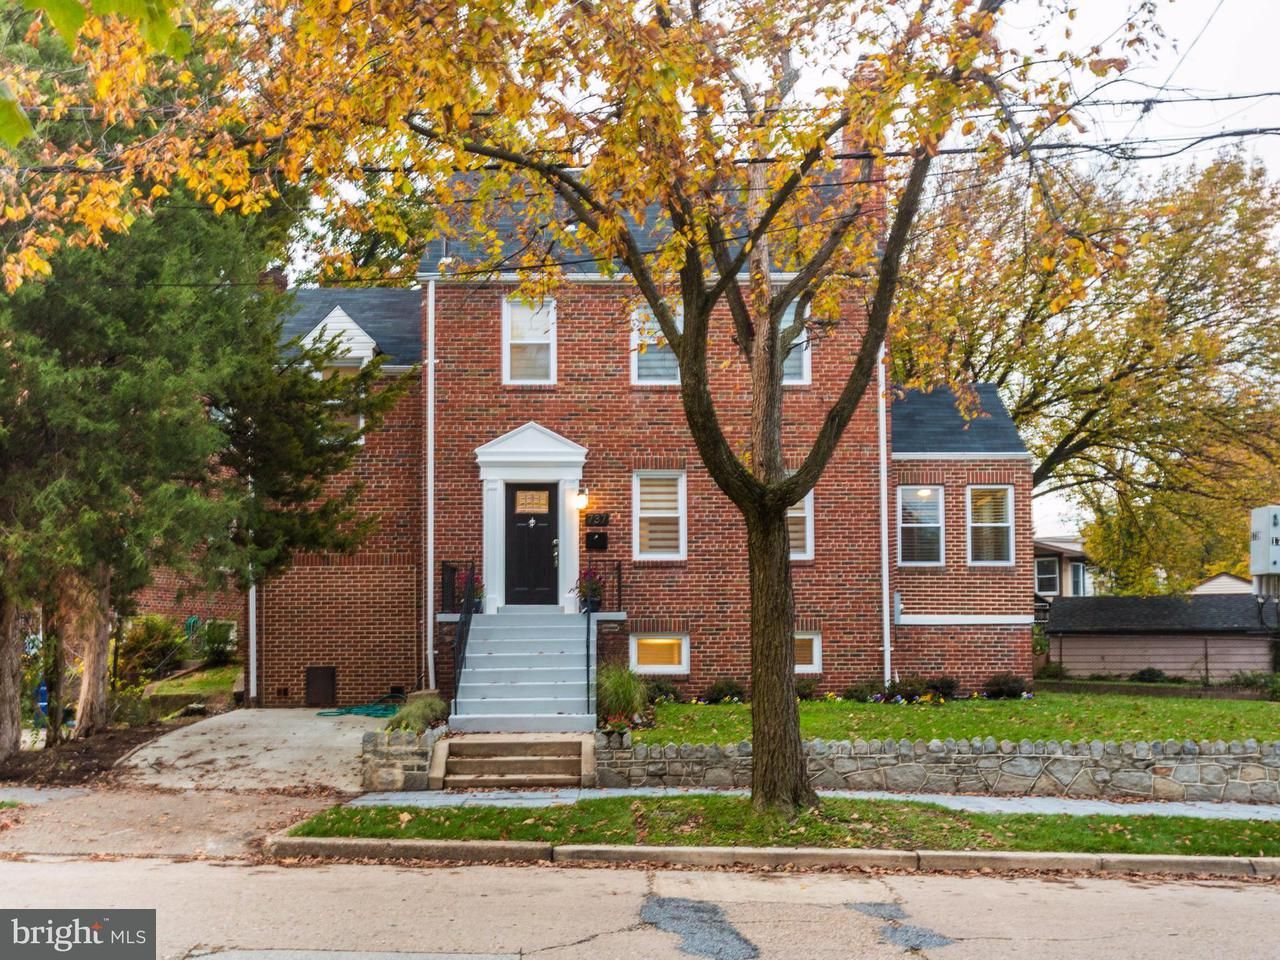 Single Family Home for Sale at 737 WHITTIER ST NW 737 WHITTIER ST NW Washington, District Of Columbia 20012 United States